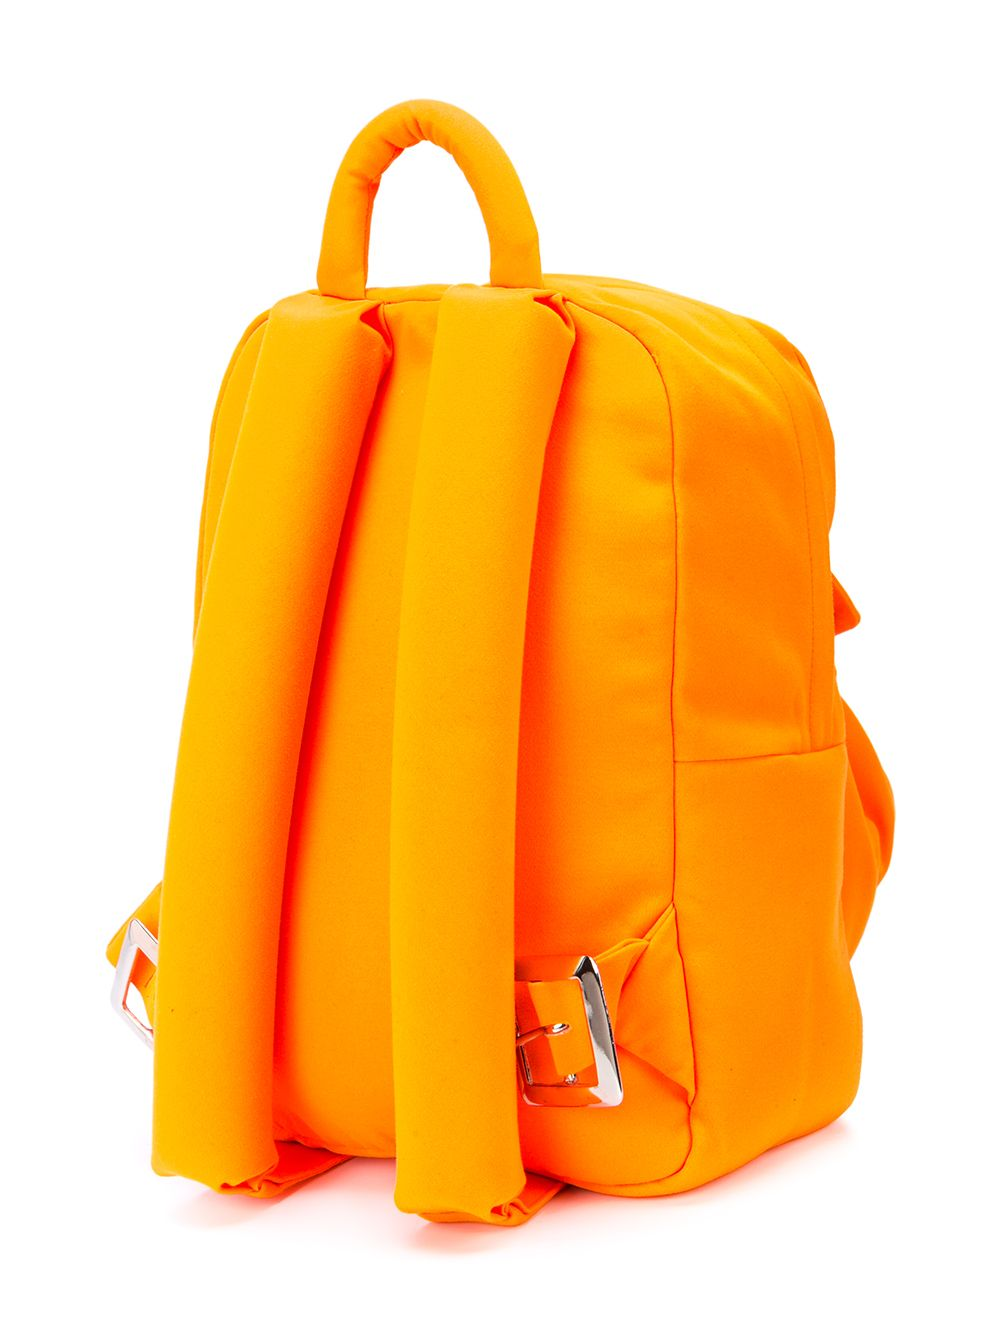 Charles Jeffrey Loverboy Orange Rucksack of Smiths - 2